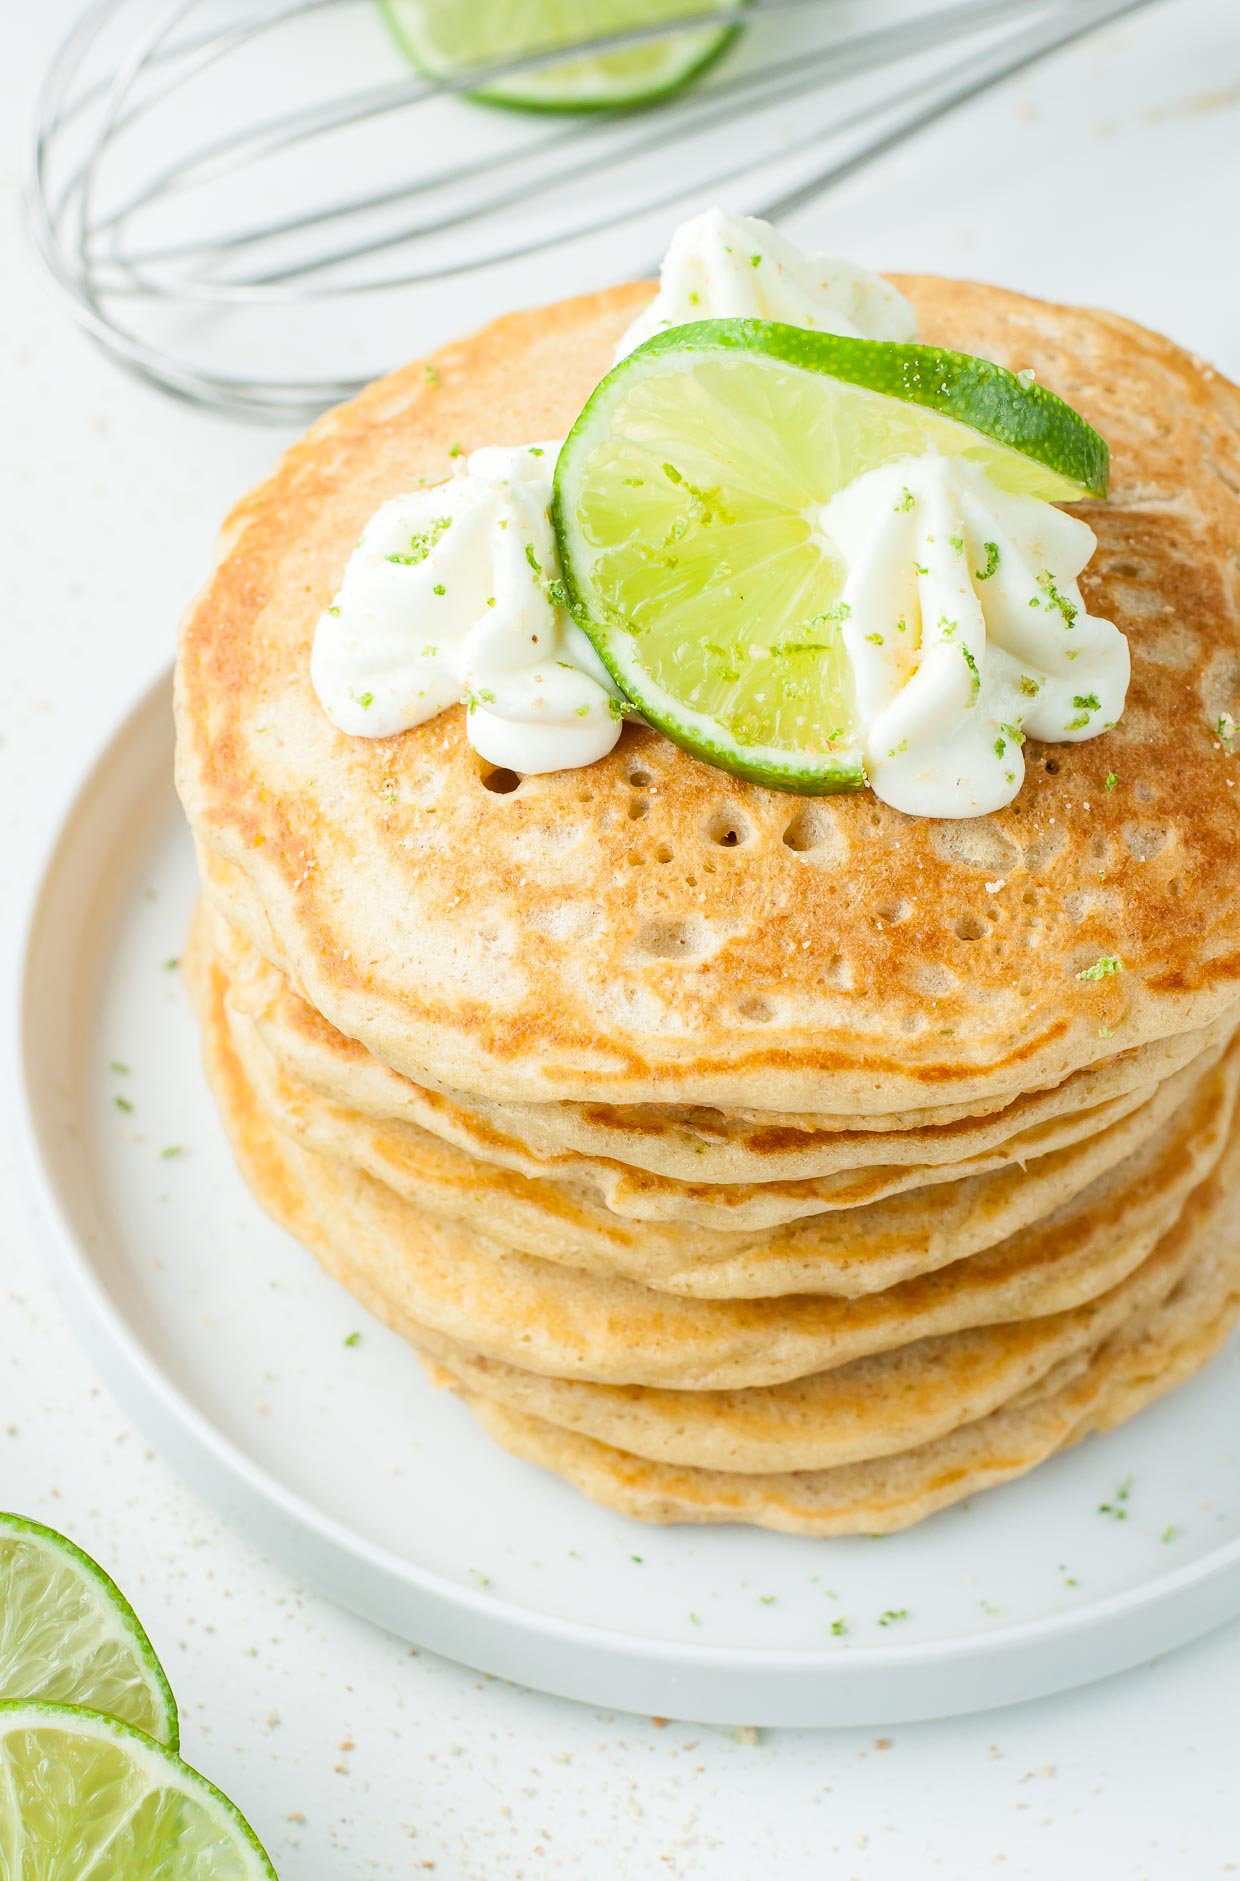 Ultra-fluffy Key Lime Pie Pancakes - our family's favorite!